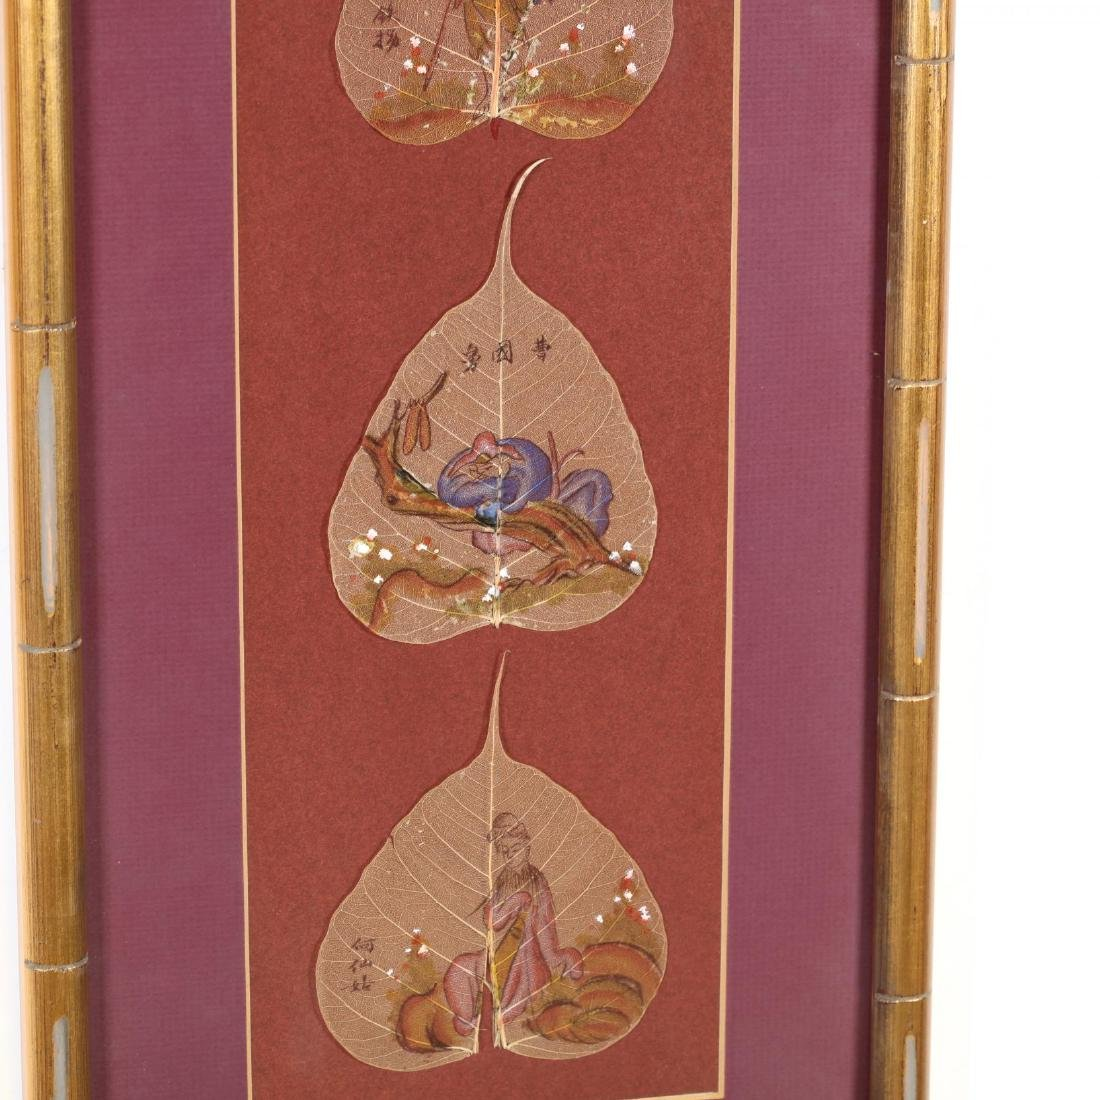 Chinese Bodhi Leaf Paintings of the Eight Daoist - 6